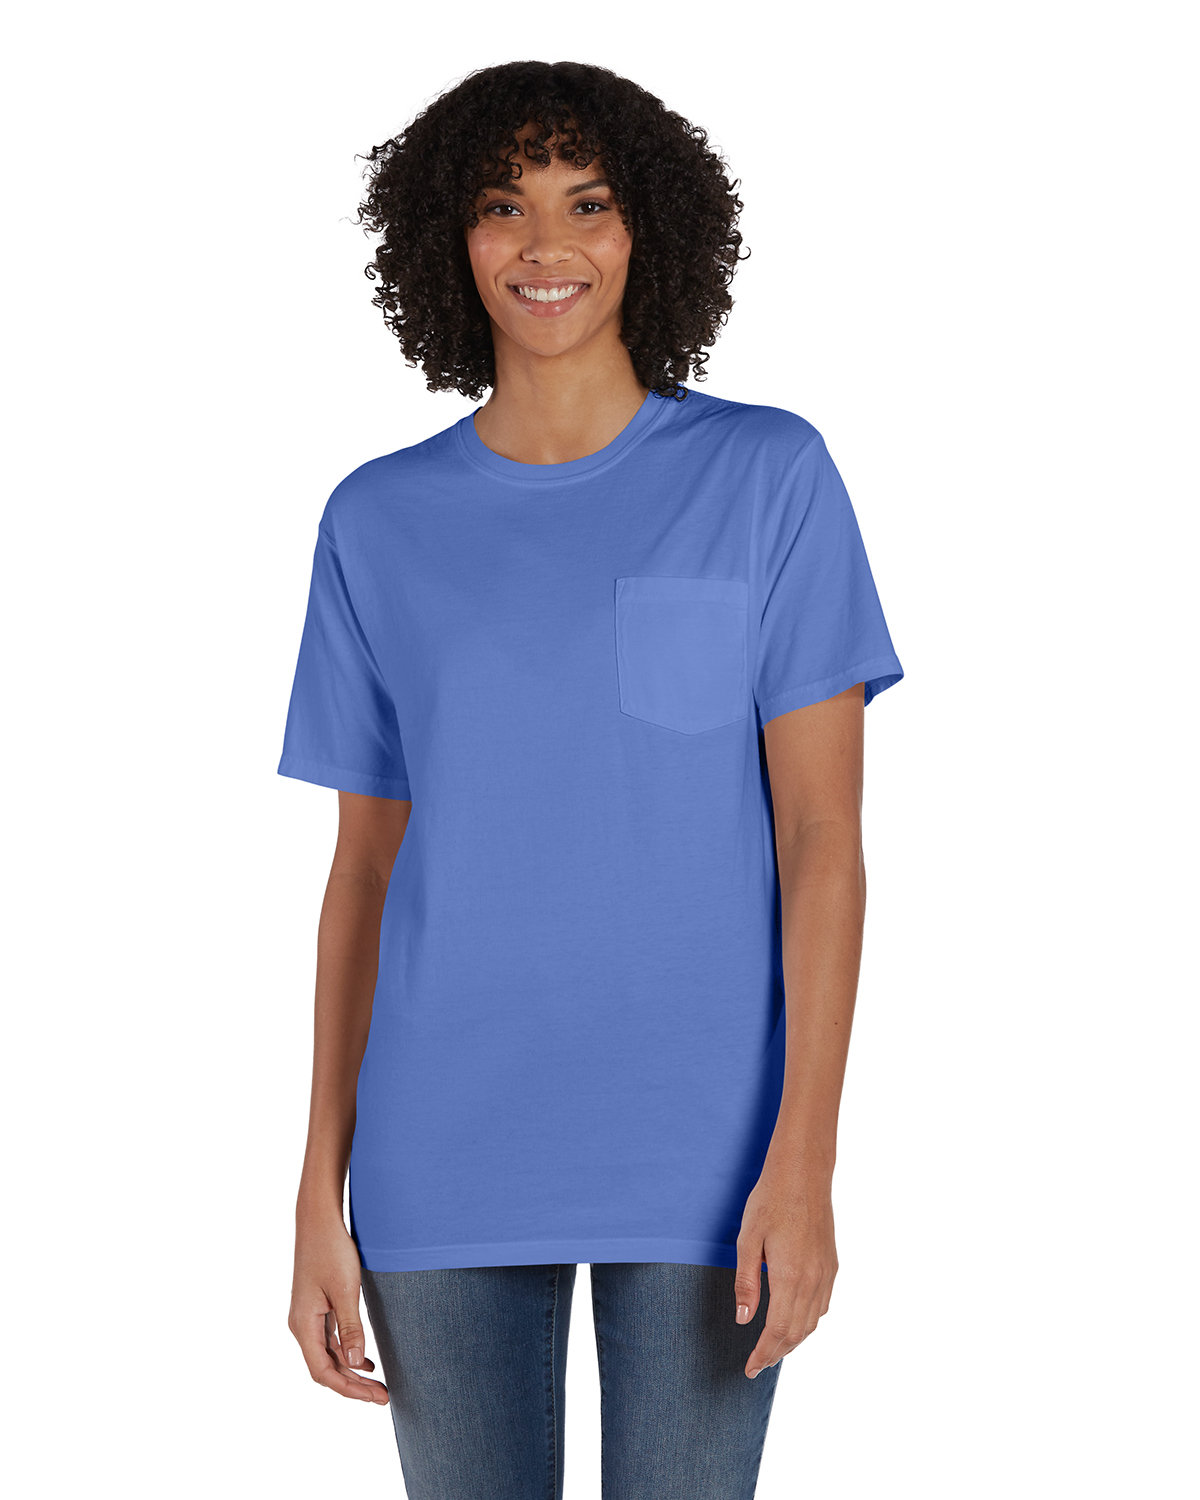 ComfortWash by Hanes Unisex 5.5 oz., 100% Ringspun Cotton Garment-Dyed T-Shirt with Pocket DEEP FORTE